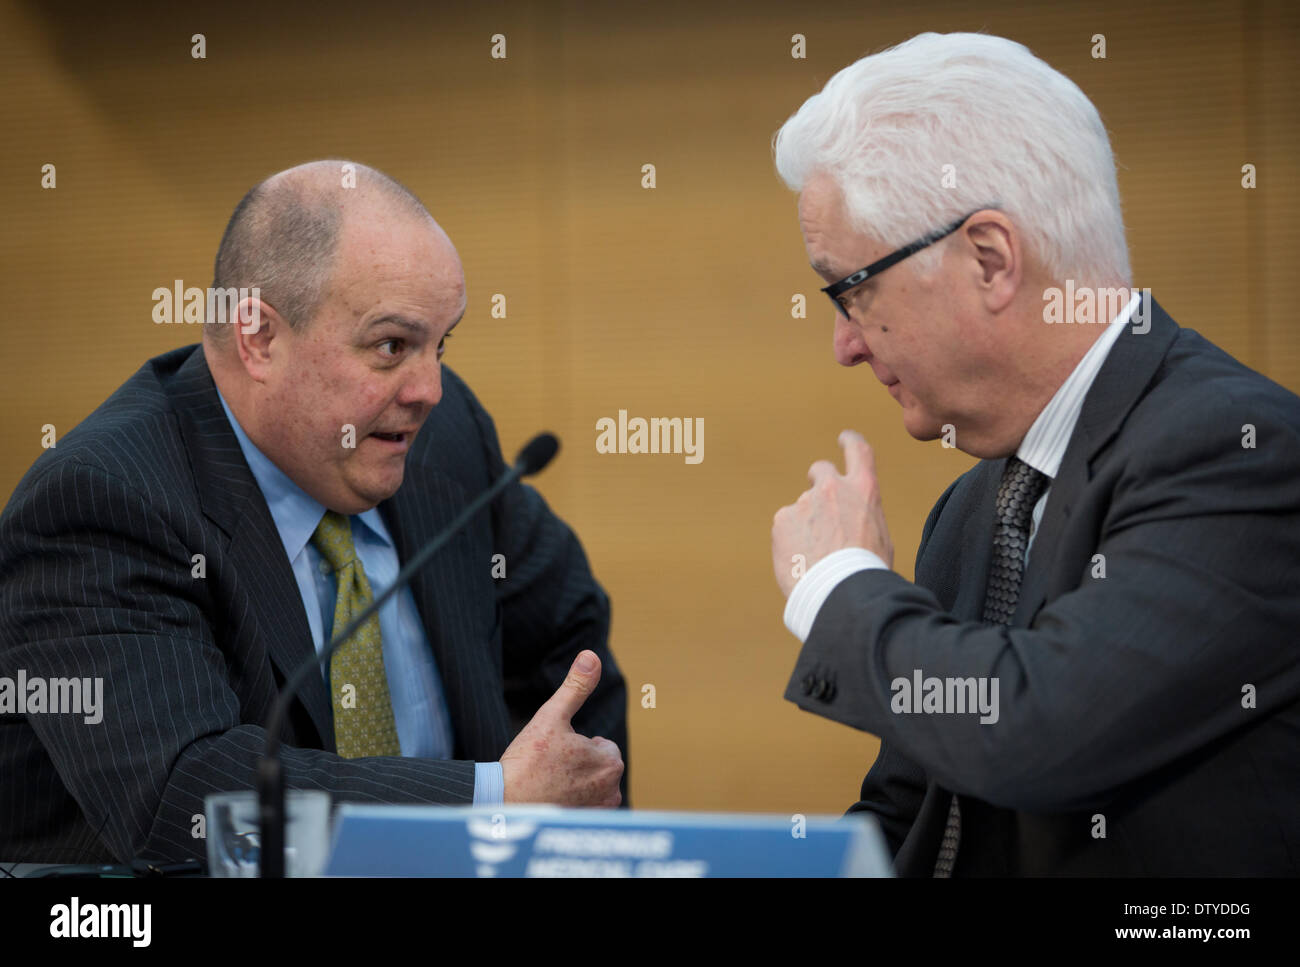 Bad Homburg, Germany. 25th Feb, 2014. CEO of Fresenius Medical Care (FMC), Rice Powell, and CFO Michael Brosnan talk before the joint annual results press conference of Fresenius SE and FMC in Bad Homburg, Germany, 25 February 2014. Medical company Fresenius achieved the best annual result in the company's history in 2013. Profits rose by twelve percent to 1.05 billion euros. Photo: FRANK RUMPENHORST/DPA/Alamy Live News - Stock Image